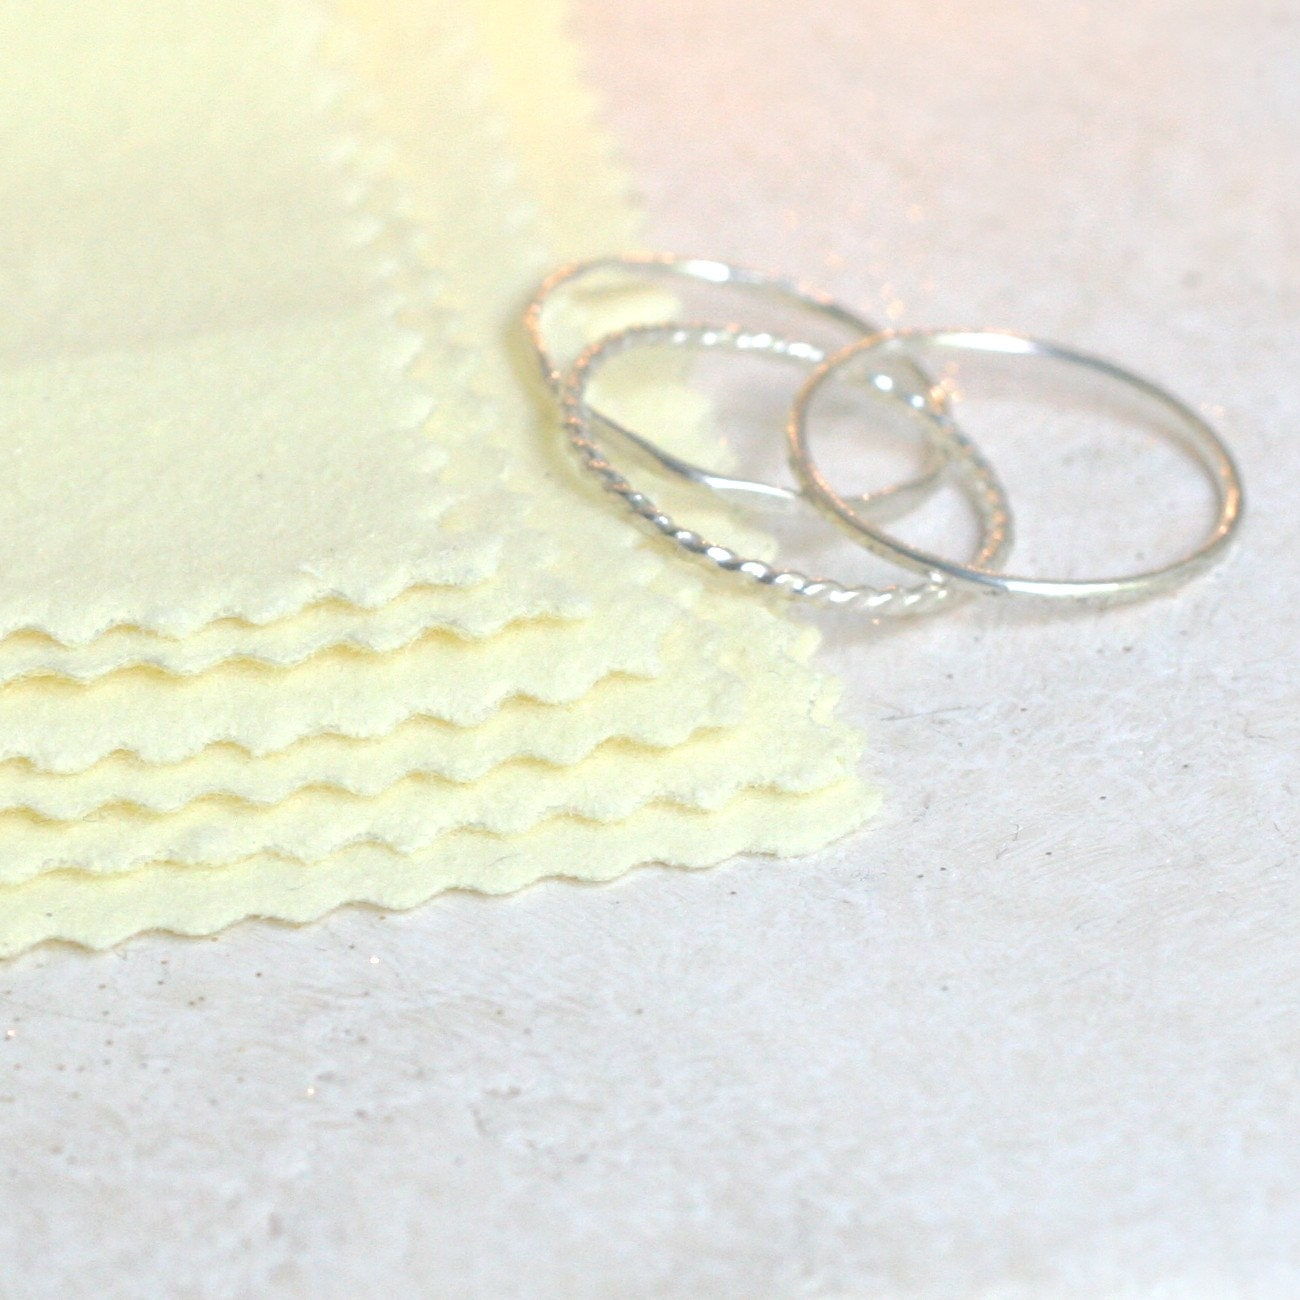 how to clean jewelry polishing cloth